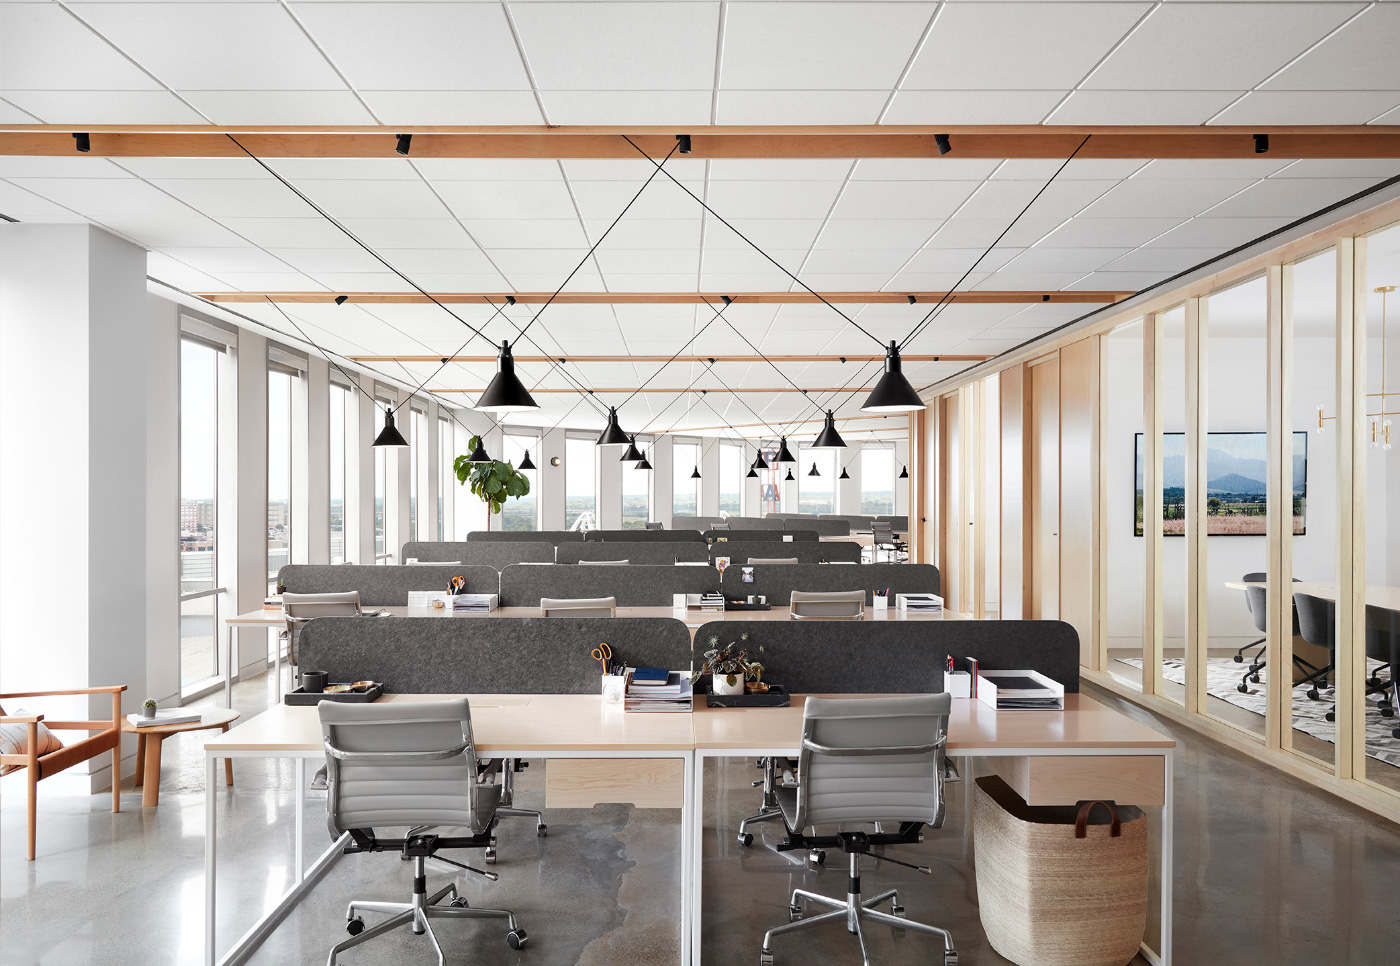 The Thoughtbarn-designed office has pendant lights and exposed beams